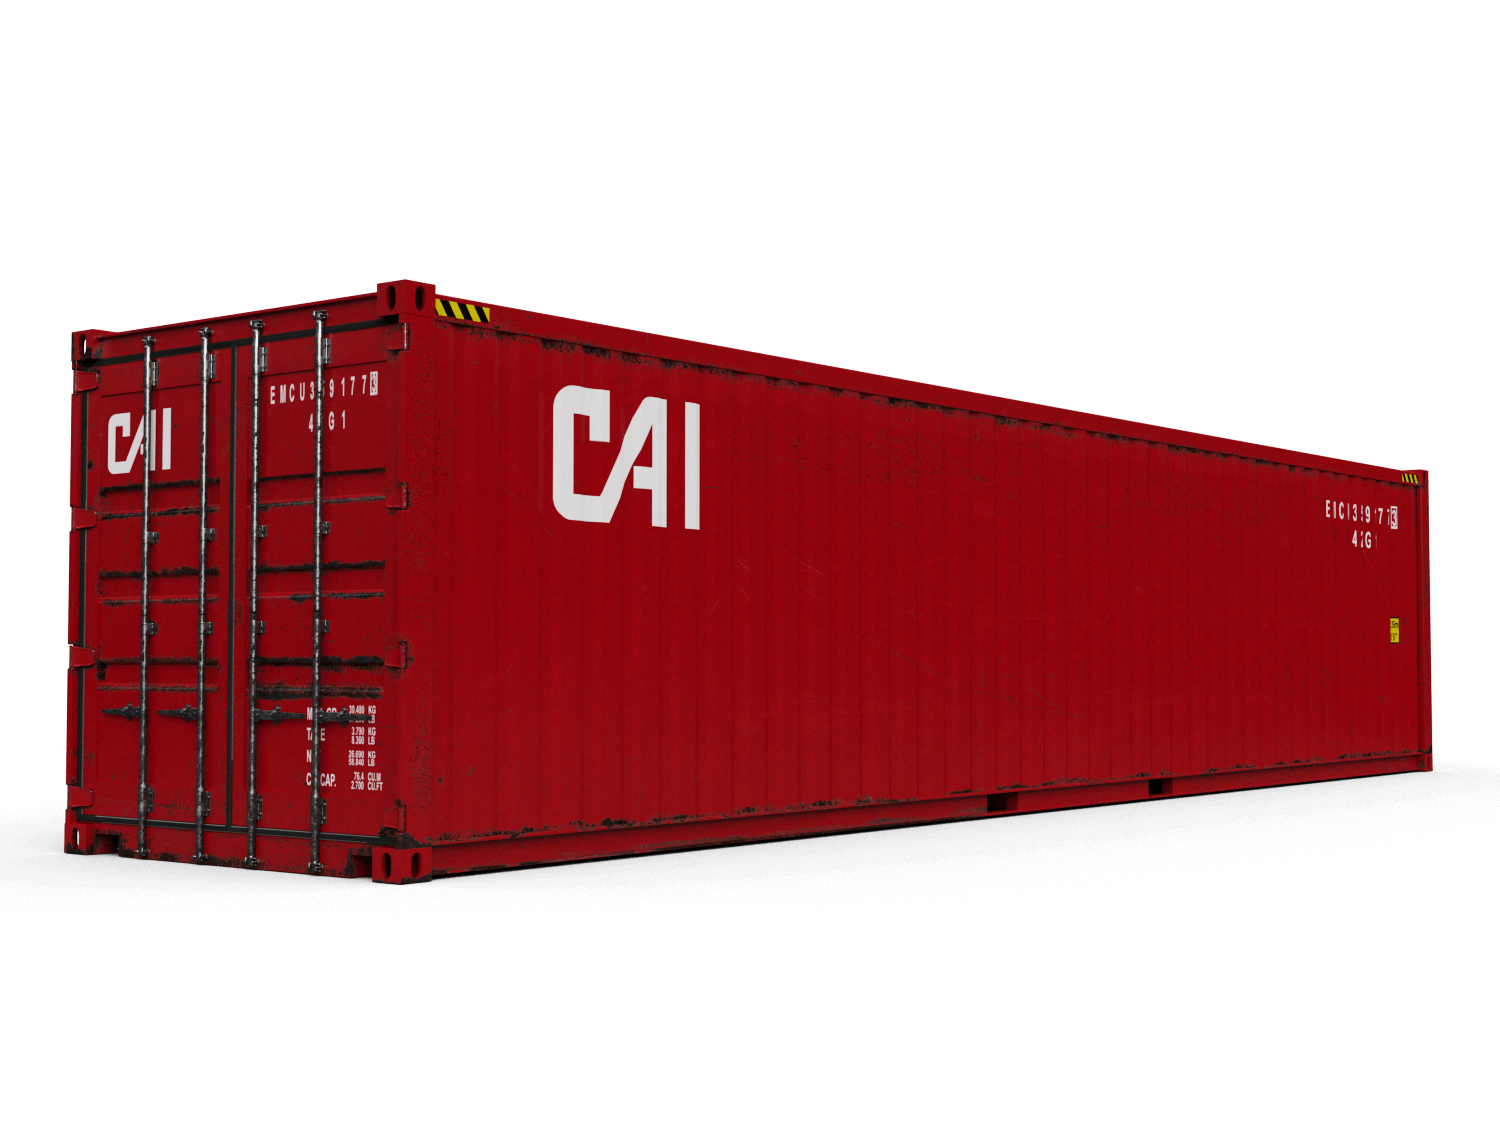 40 Shipping Container >> 40 Foot Shipping Containers For Sale